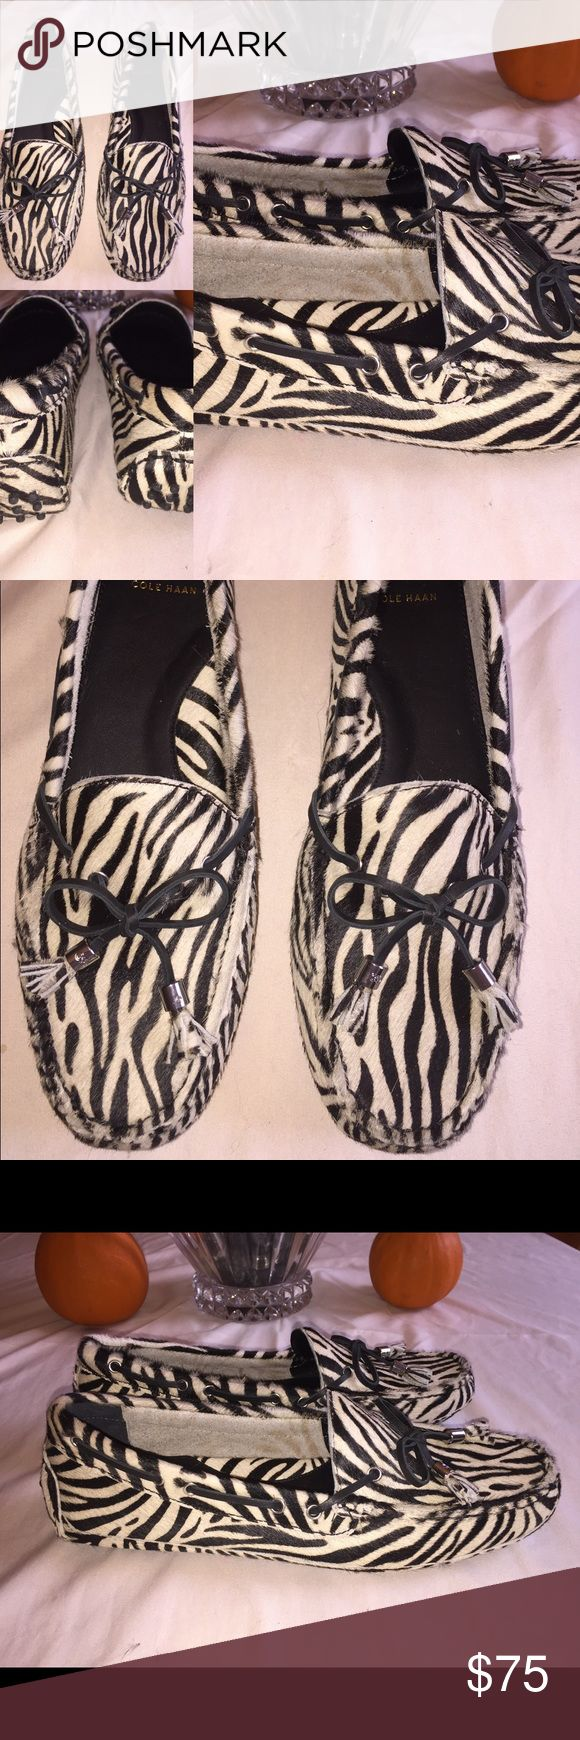 Cole Haan Zebra Moccasin Drivers Zebra print, calf hair Marketed as a driving shoe, moccasin style Brand new, never worn. Marking on bottom as shown. Size 8.5 B Cole Haan Shoes Moccasins